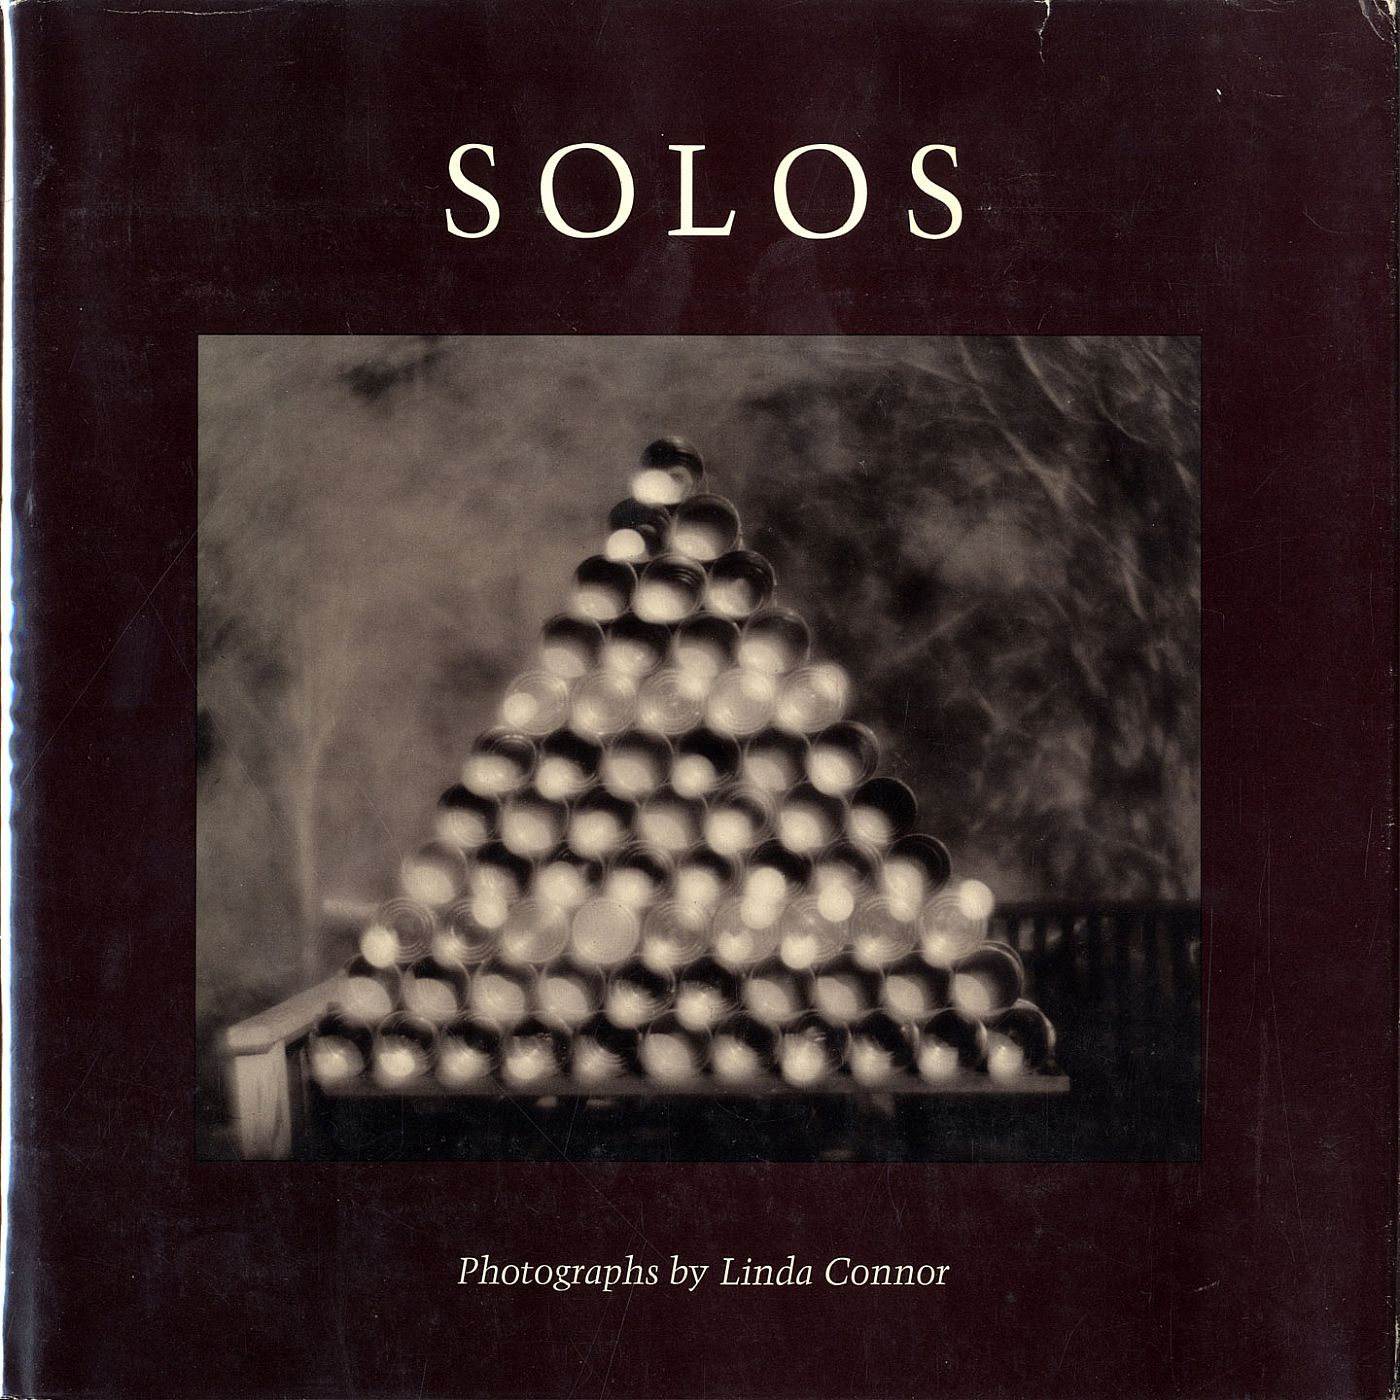 Solos: Photographs by Linda Connor [SIGNED & INSCRIBED]